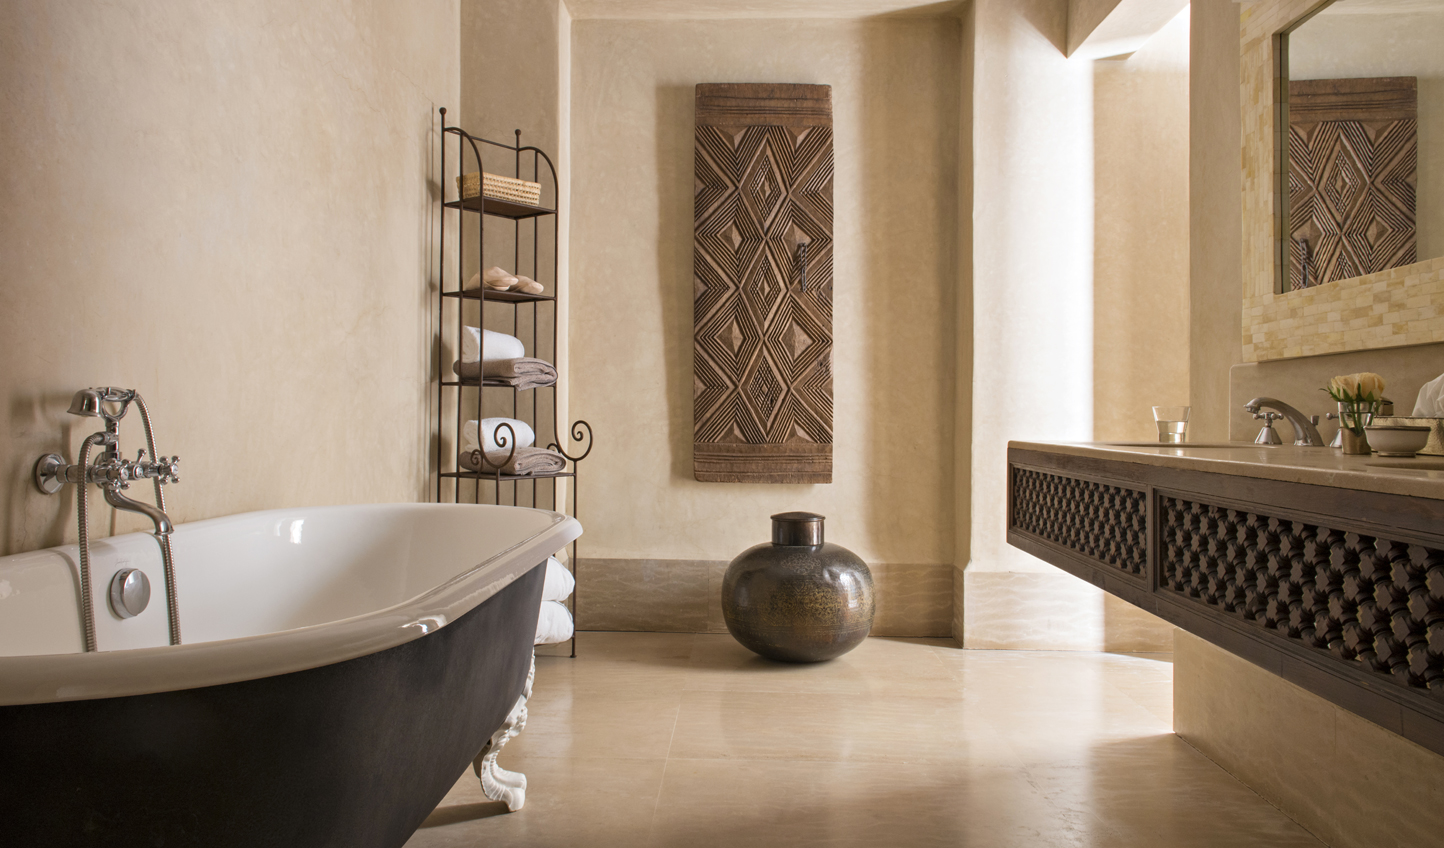 Sink into a sumptuous tub